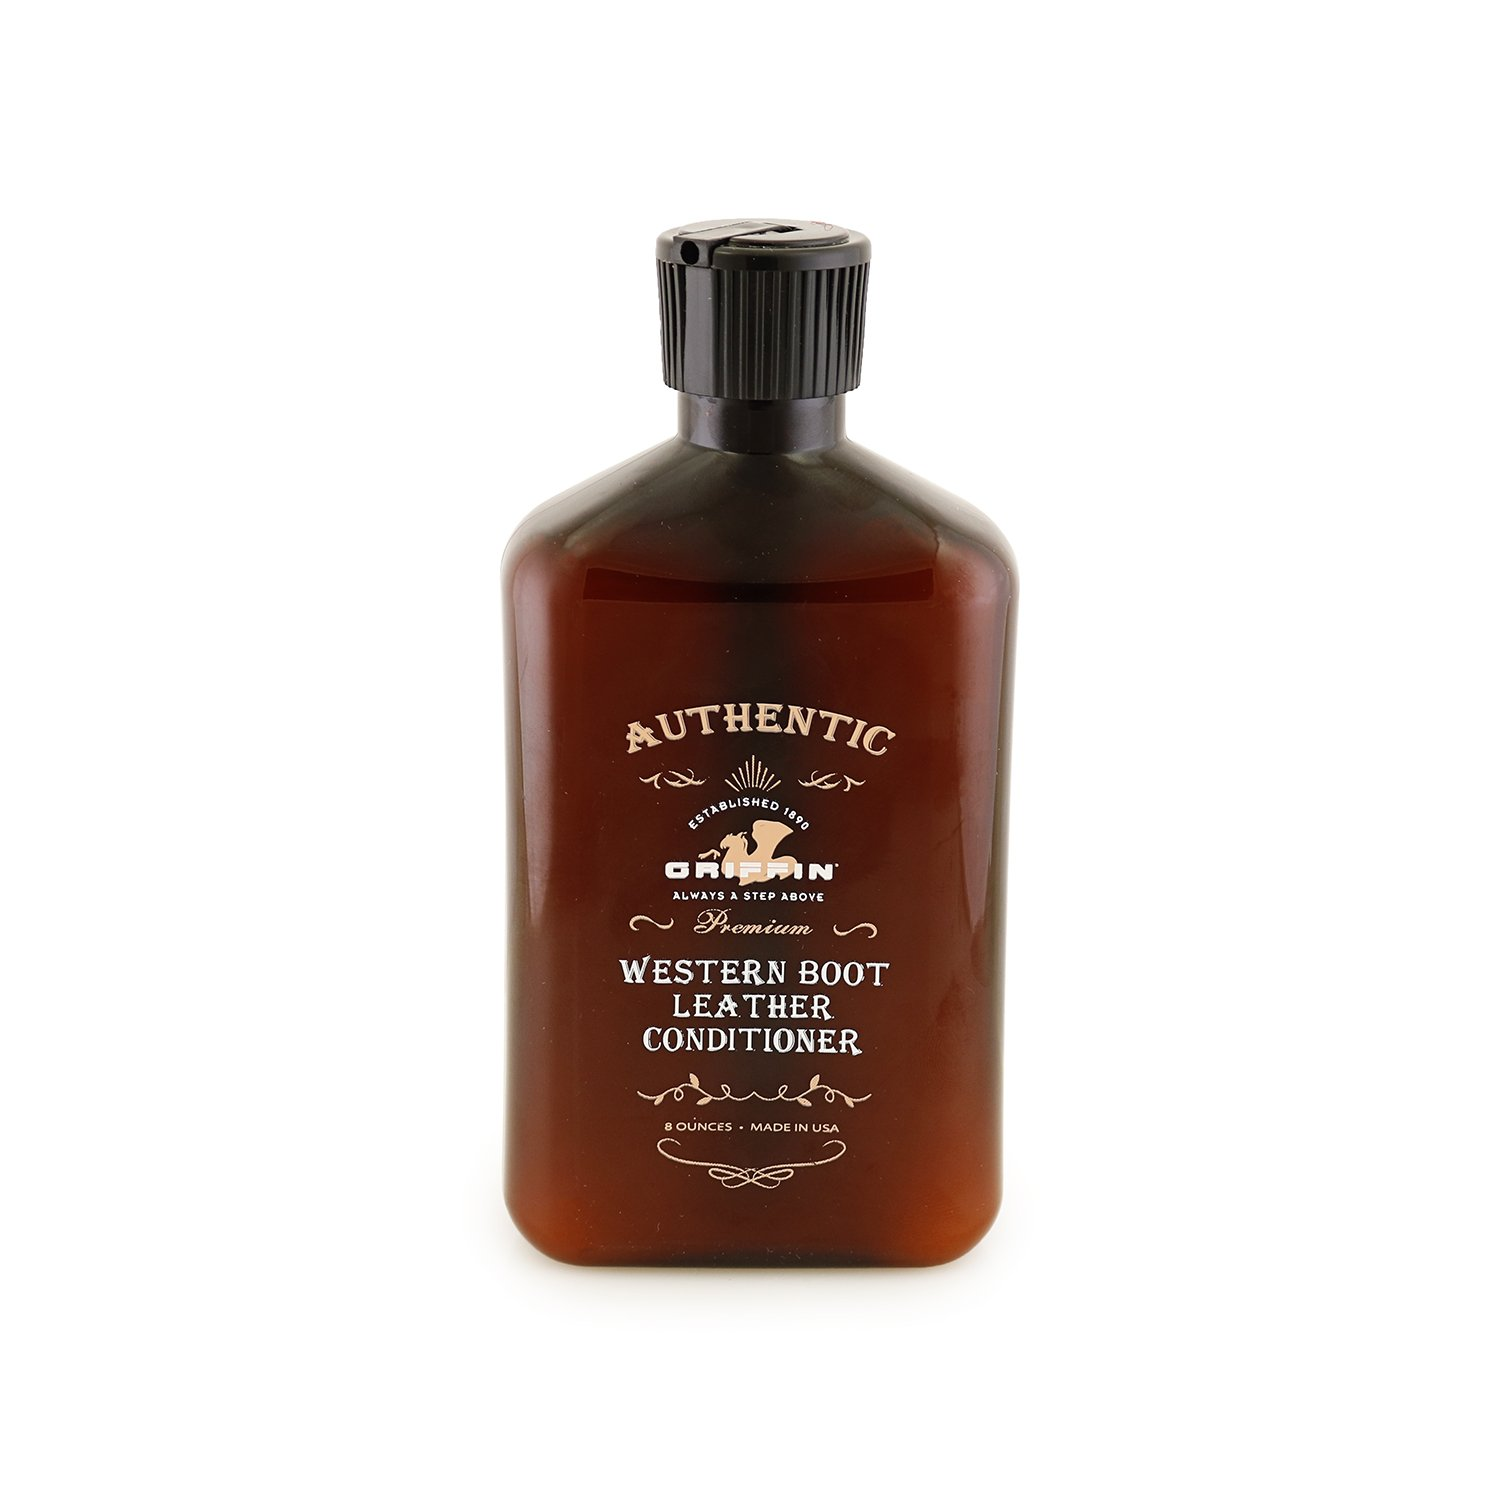 Griffin Western Leather Conditioner - Shine, Restore, Protect, and Condition! Shoes, Boots, Auto Interiors, Furniture, Handbags, Leather Tack and Western Products. Made in the USA by GRIFFIN